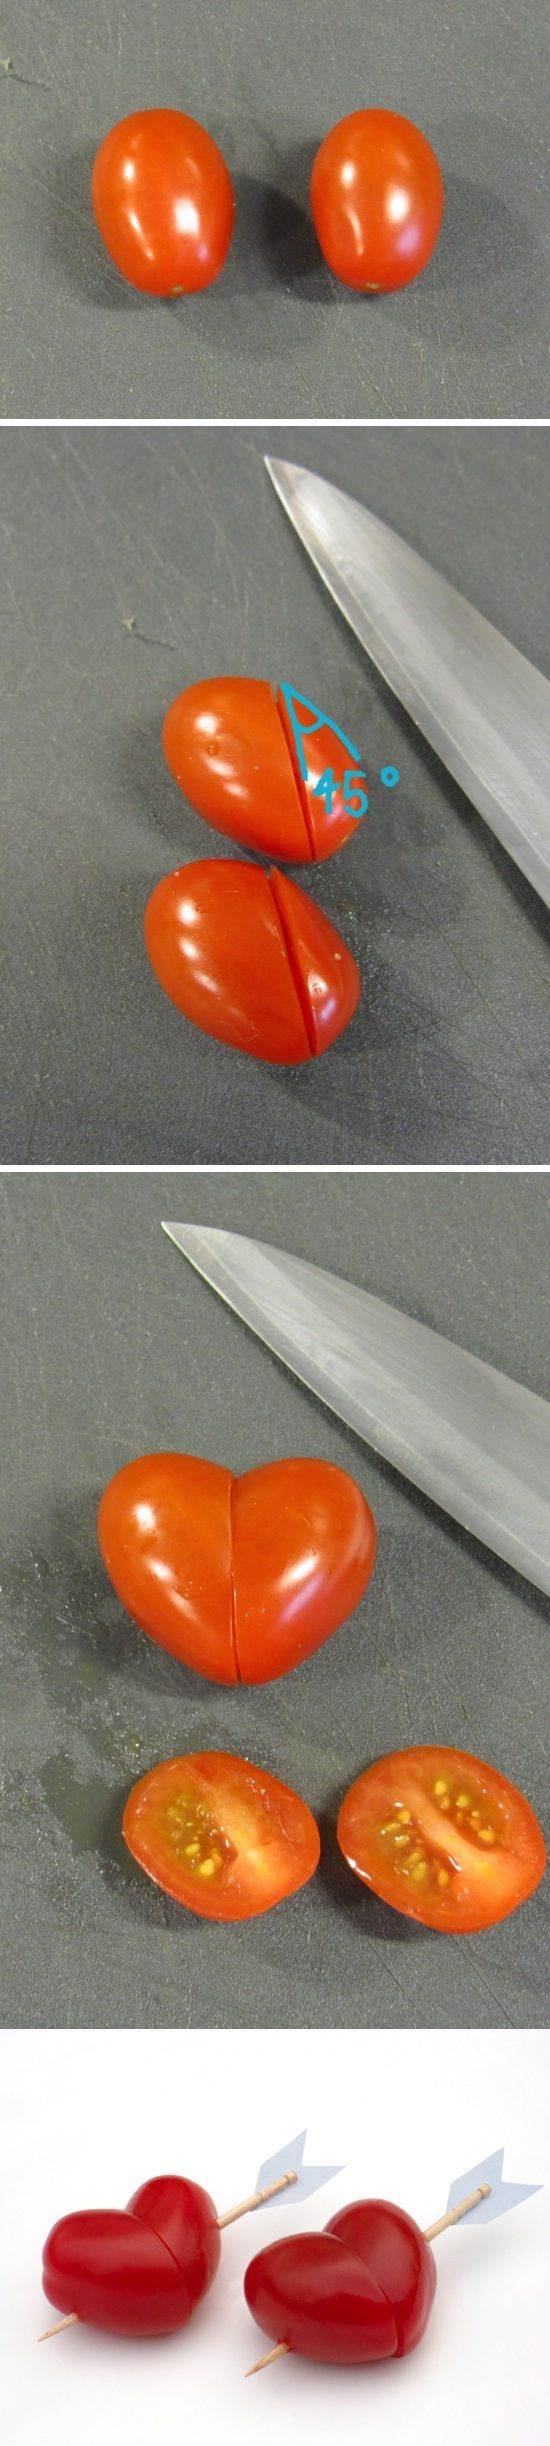 Heart Shaped Cherry Tomatoes | Recipe By Photo